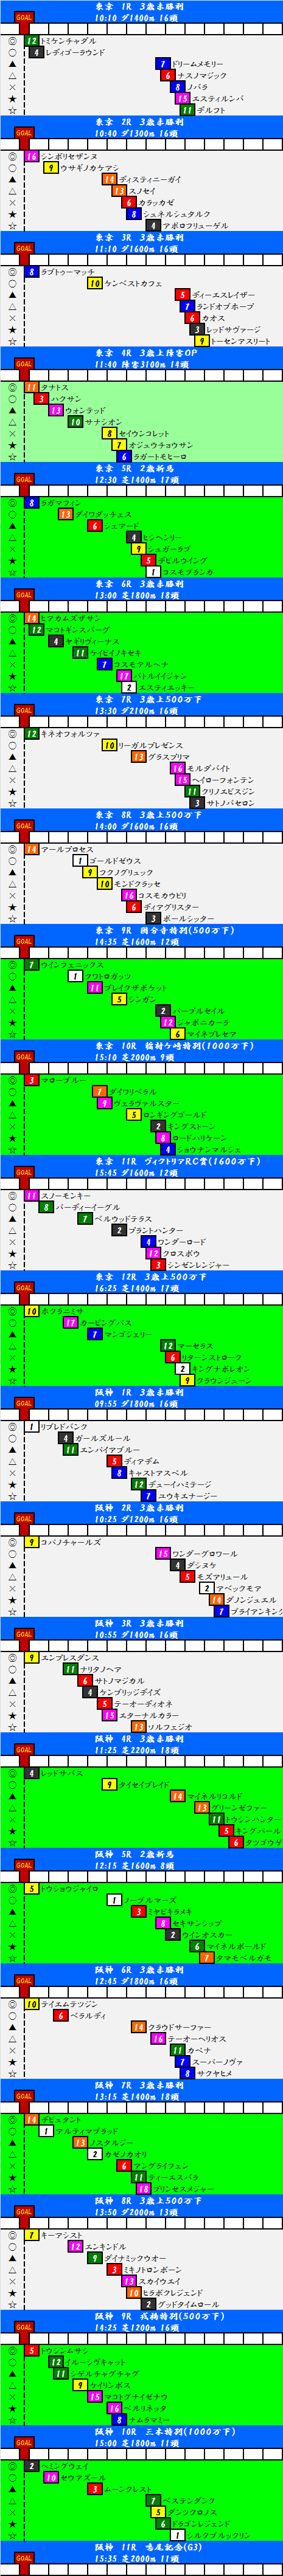 2015060601.png